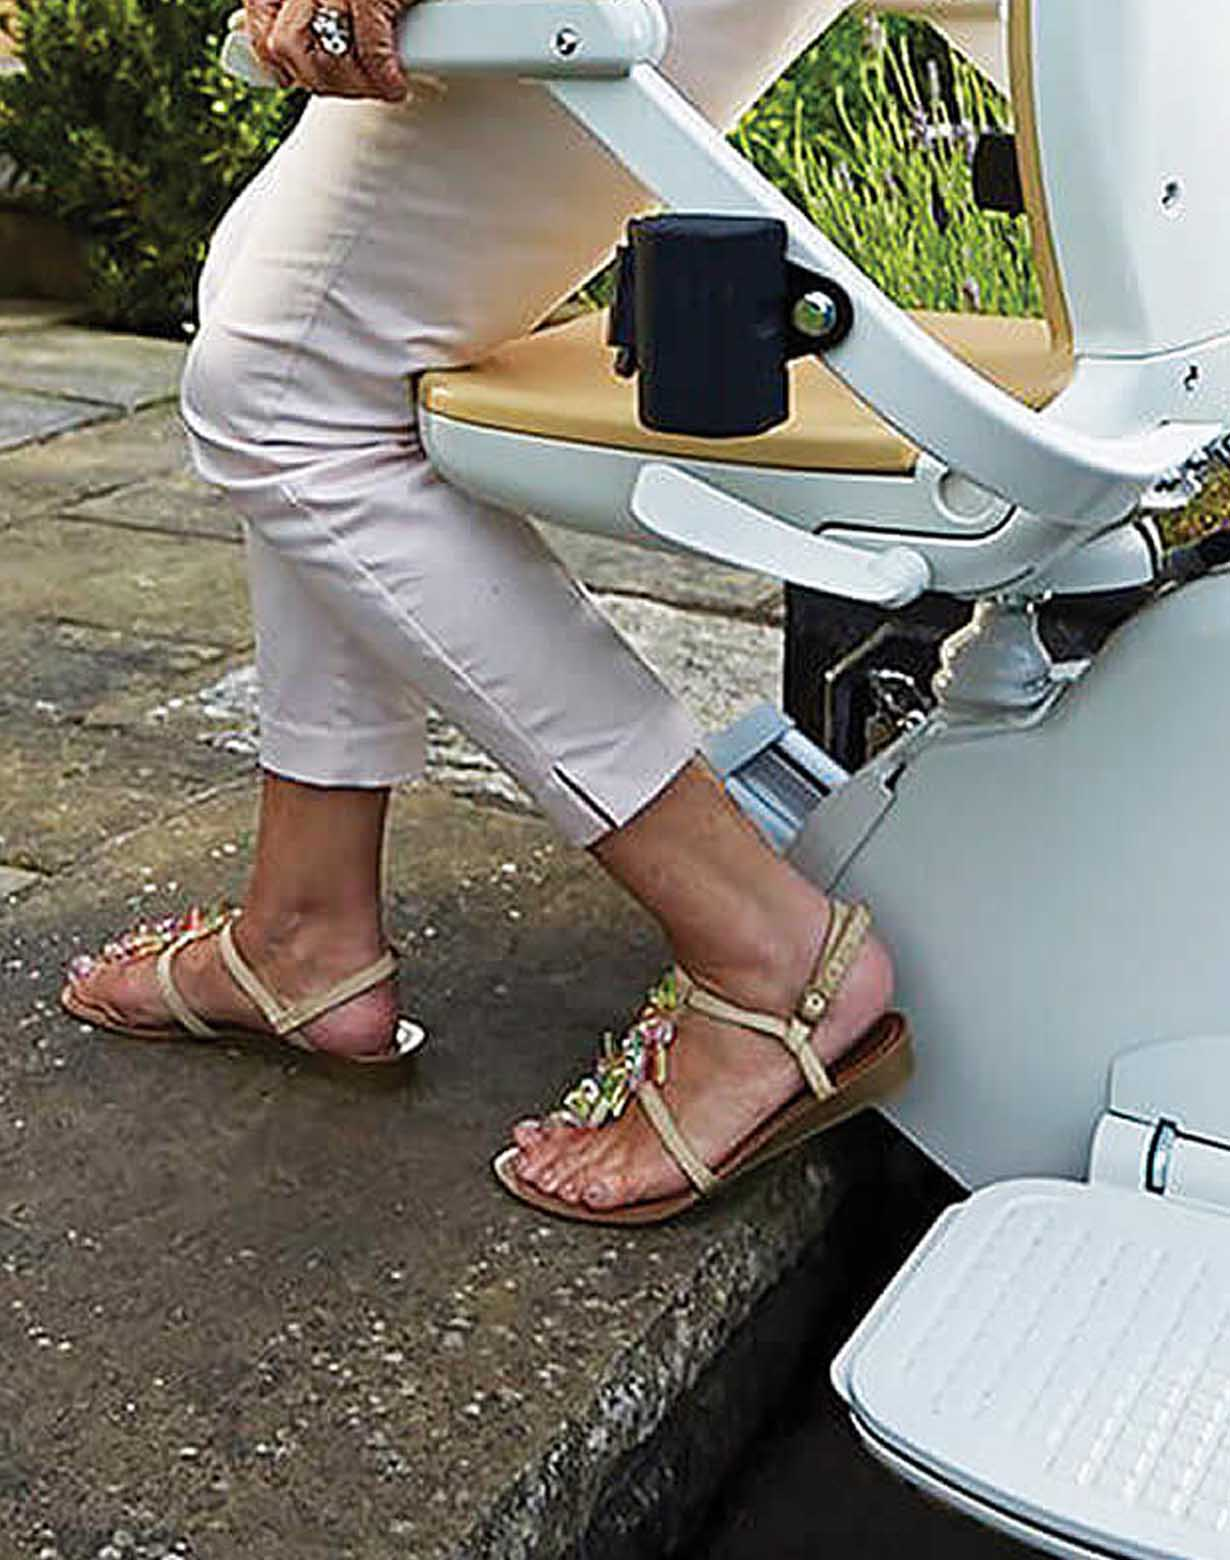 Lady getting off outdoor straight stairlift she has swivelled the seat to safely dismount